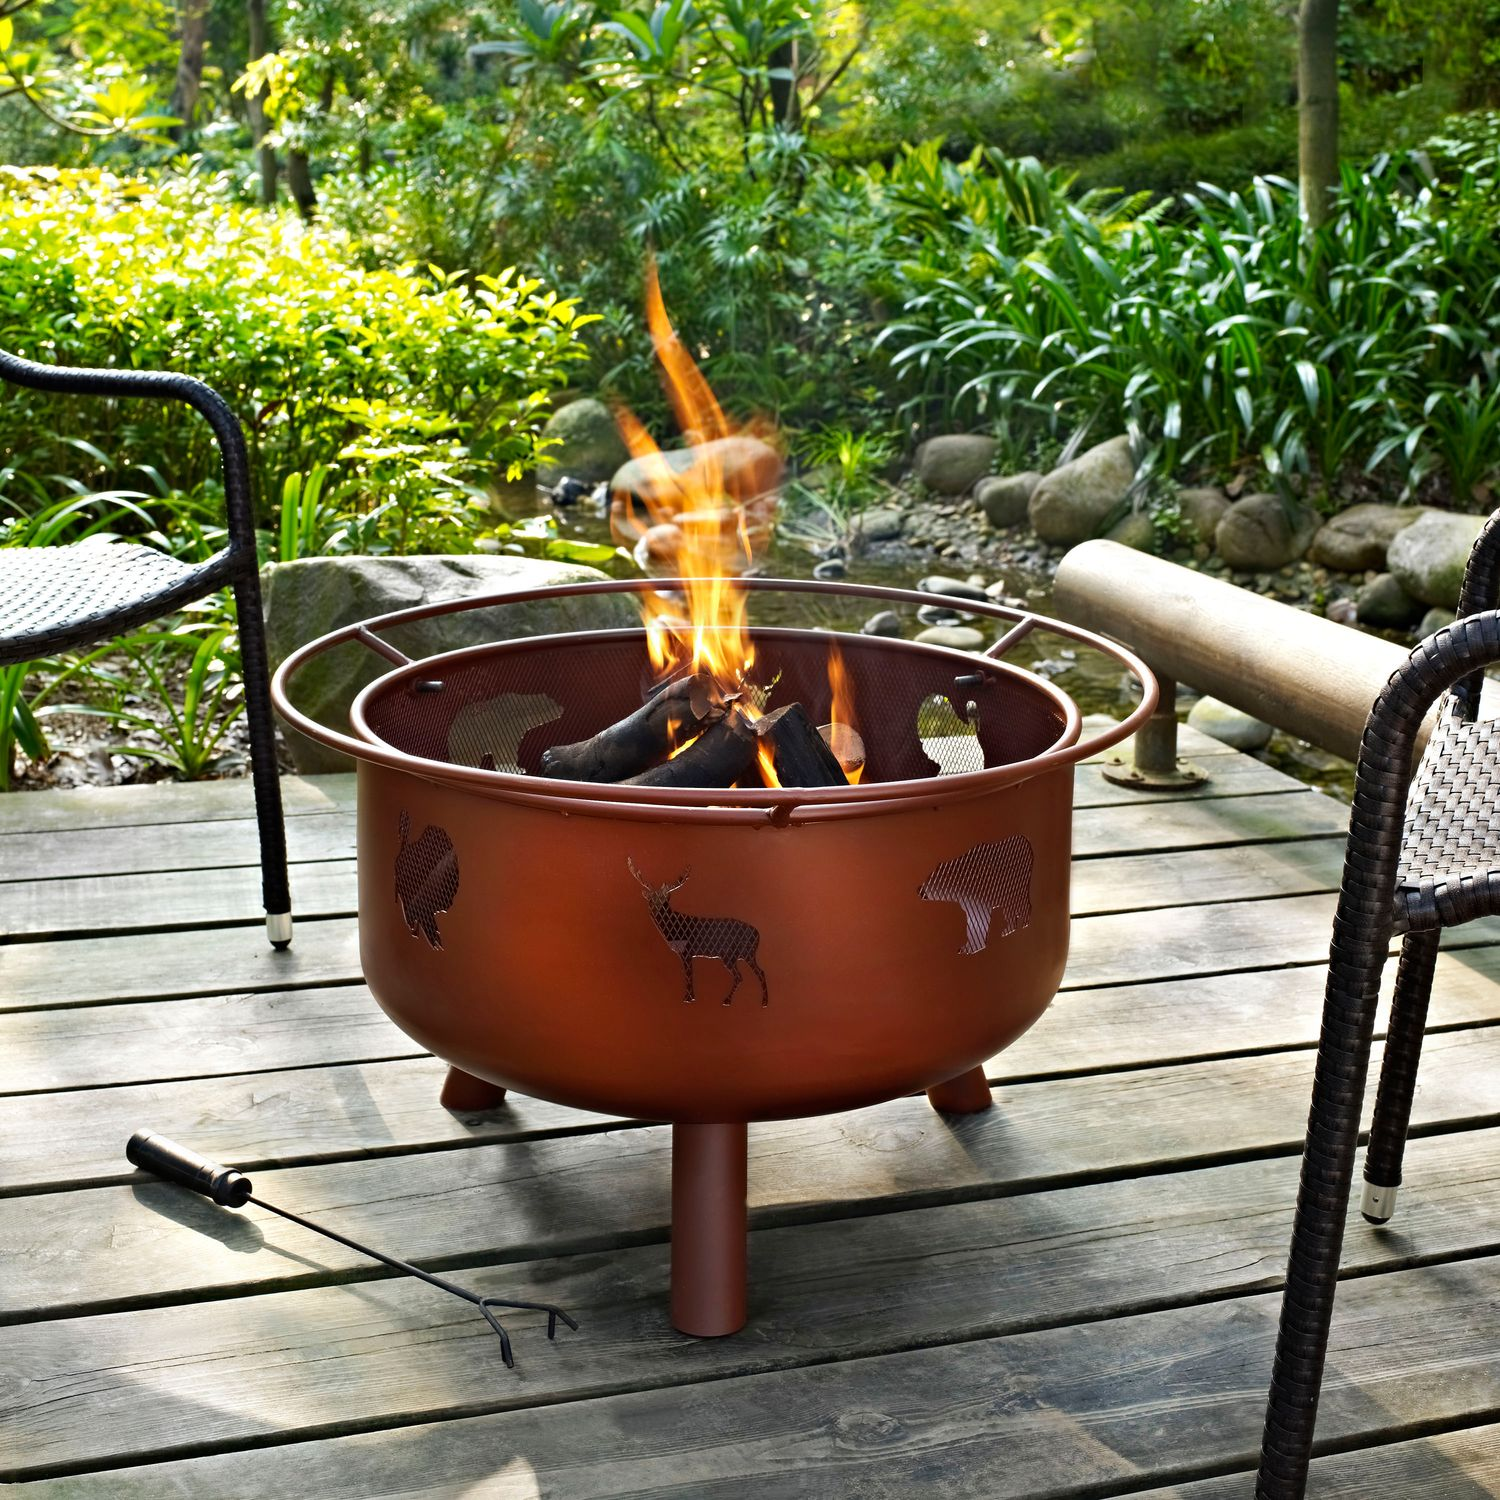 Outdoor Furniture - Woodbury Fire Pit - Rust